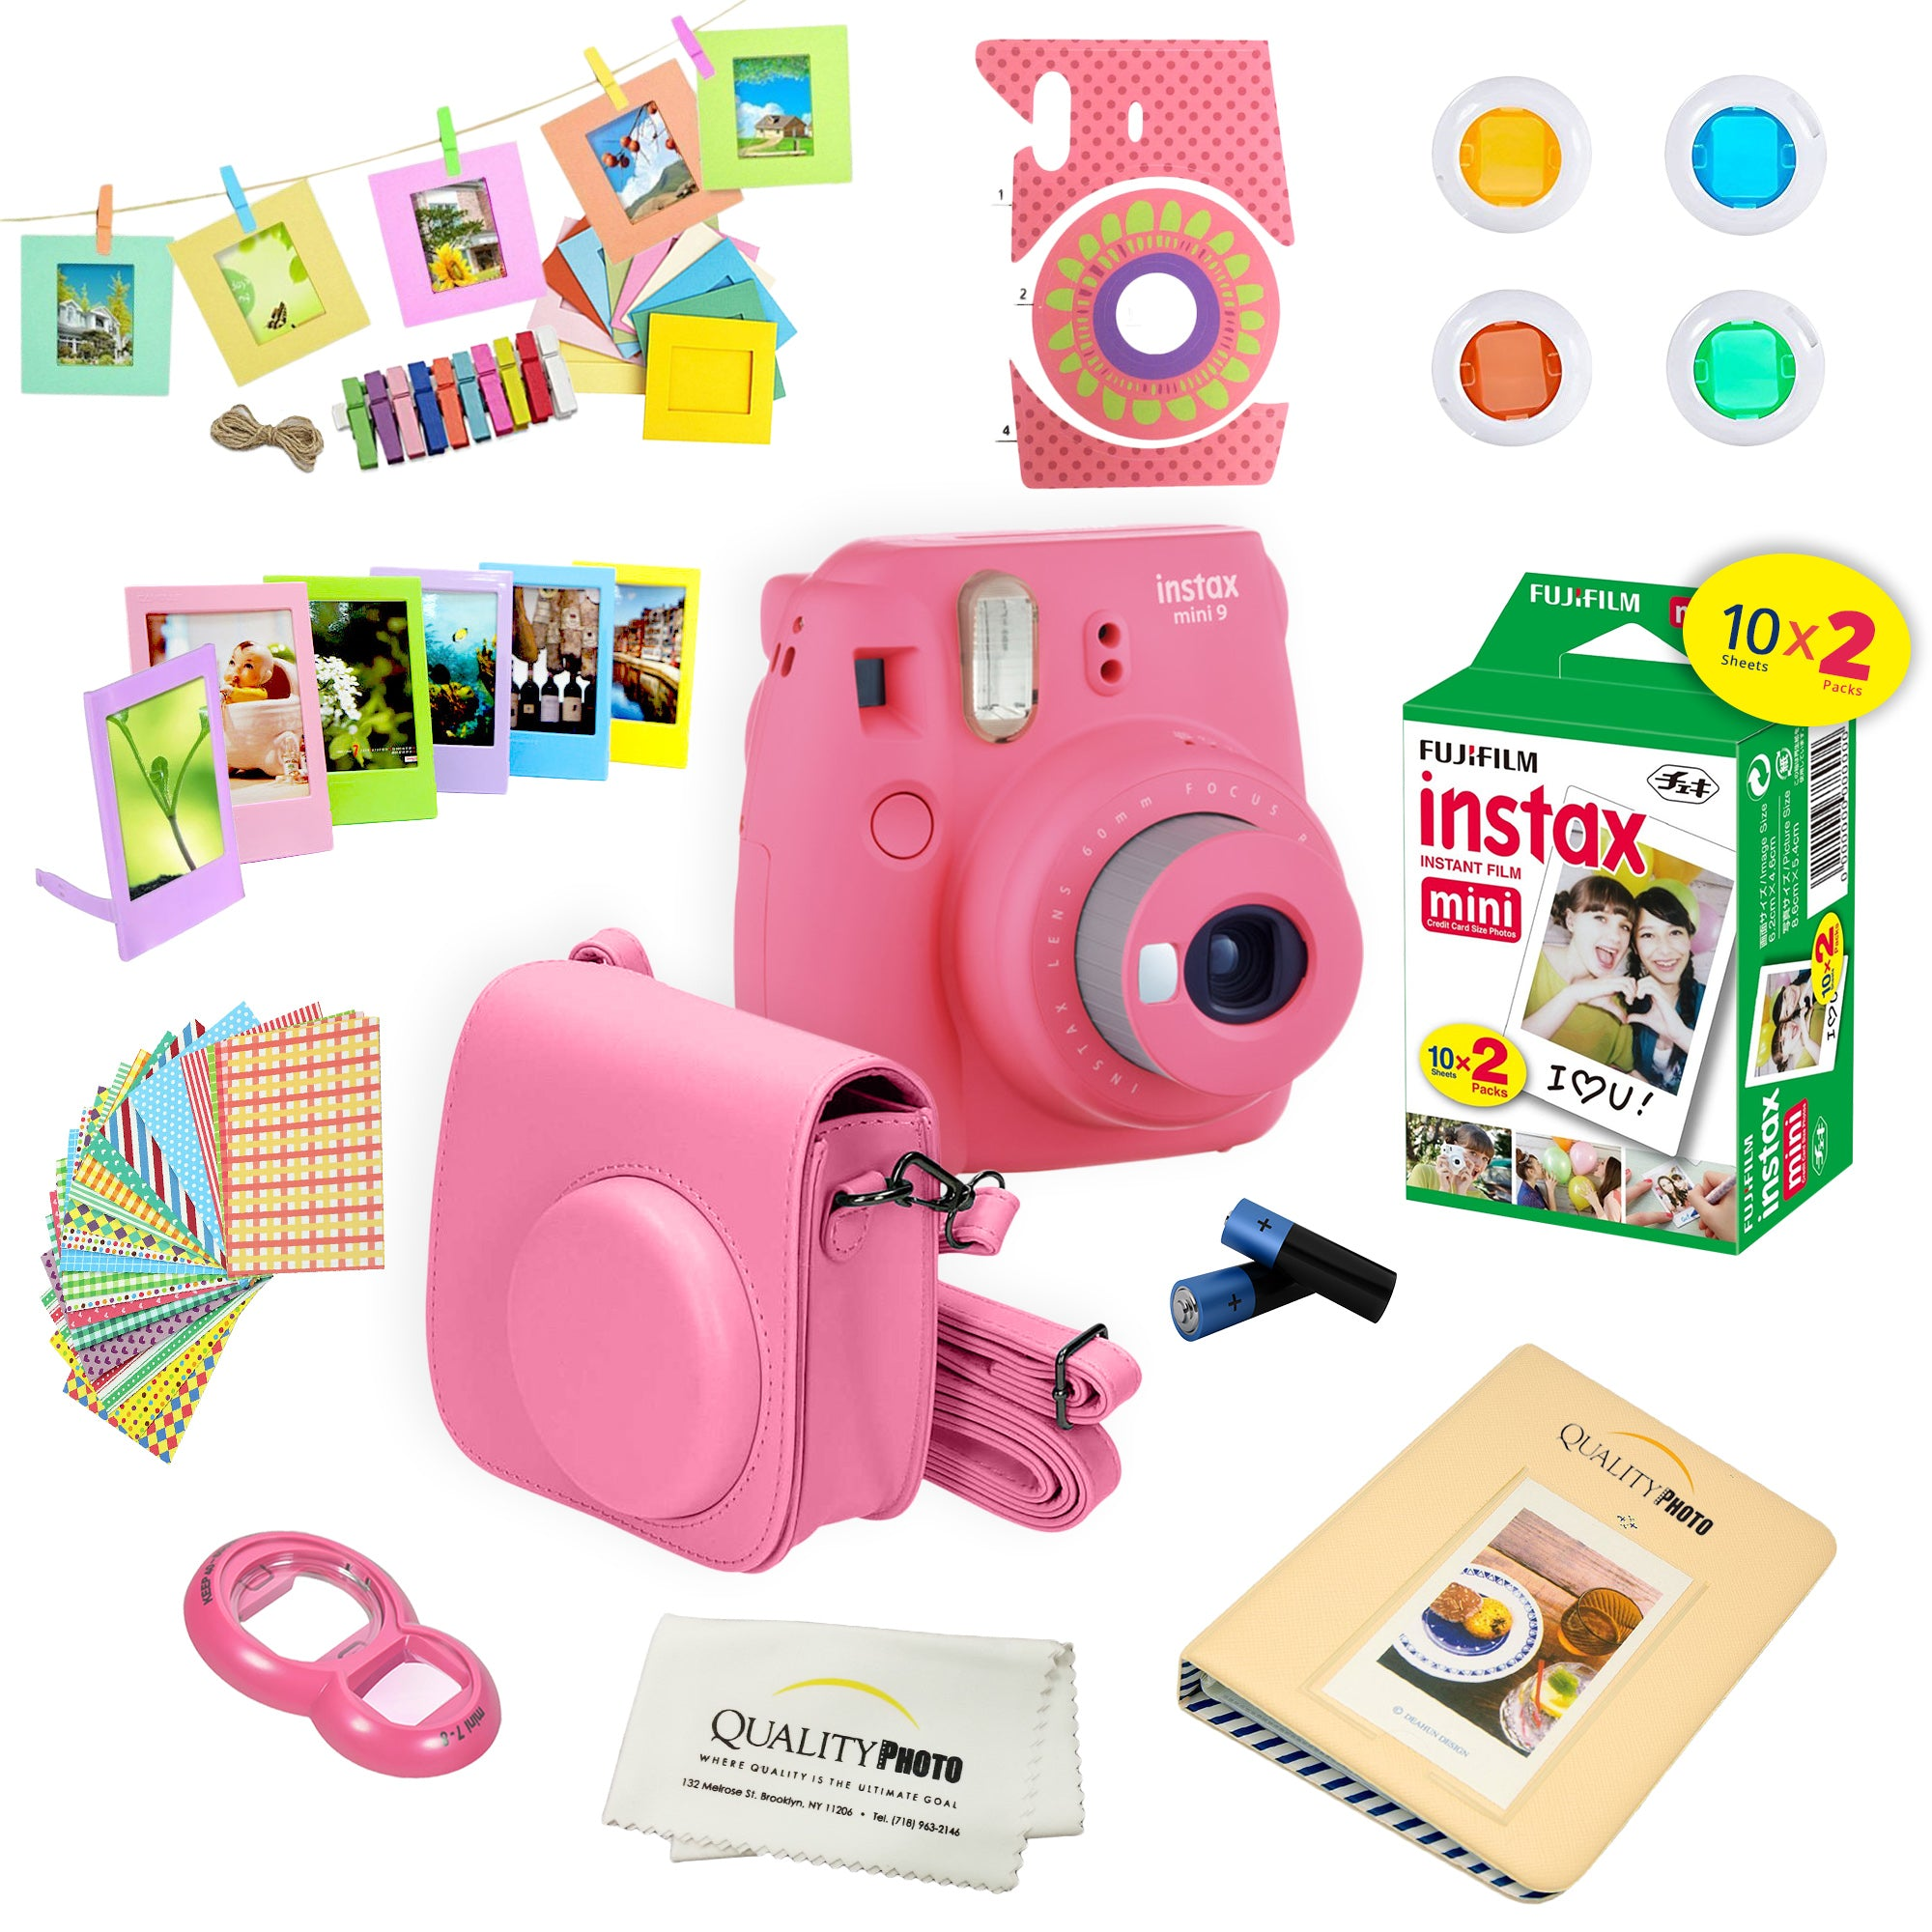 Fujifilm Instax Mini 9 Instant Camera w/ Film and Accessories - Polaroid Camera Kit